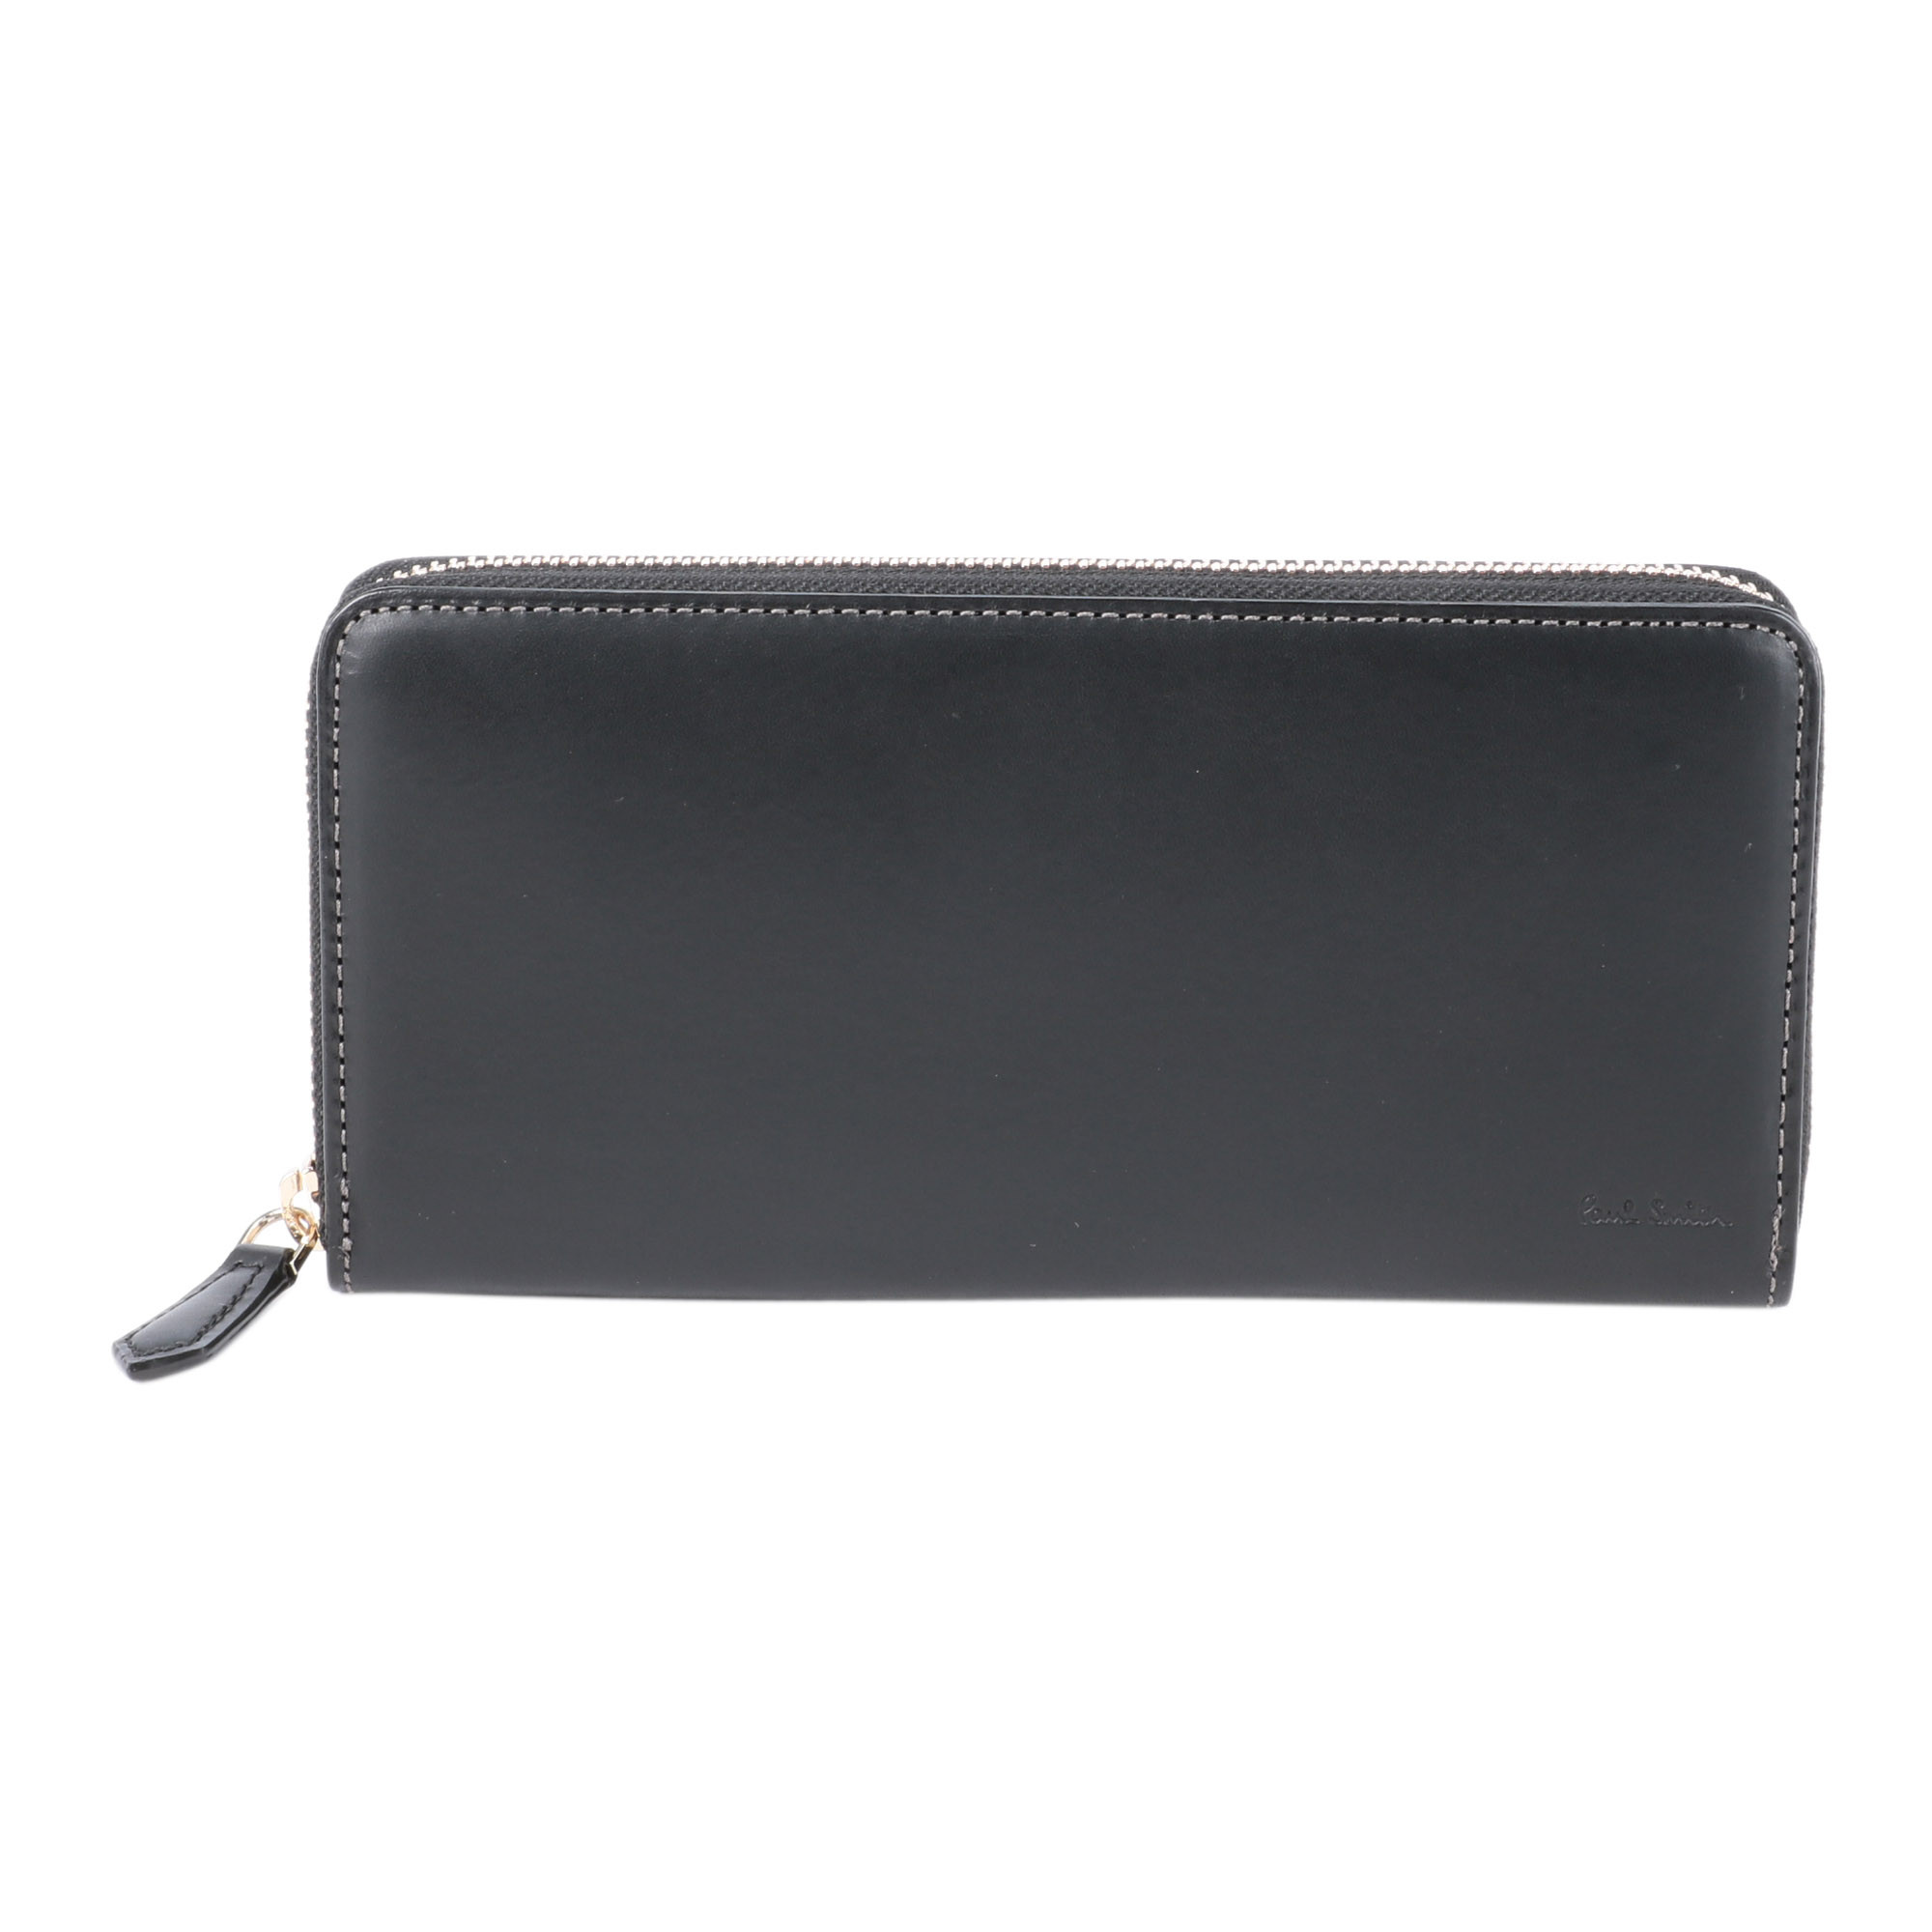 OLD LEATHER LONG ZIP WALLET